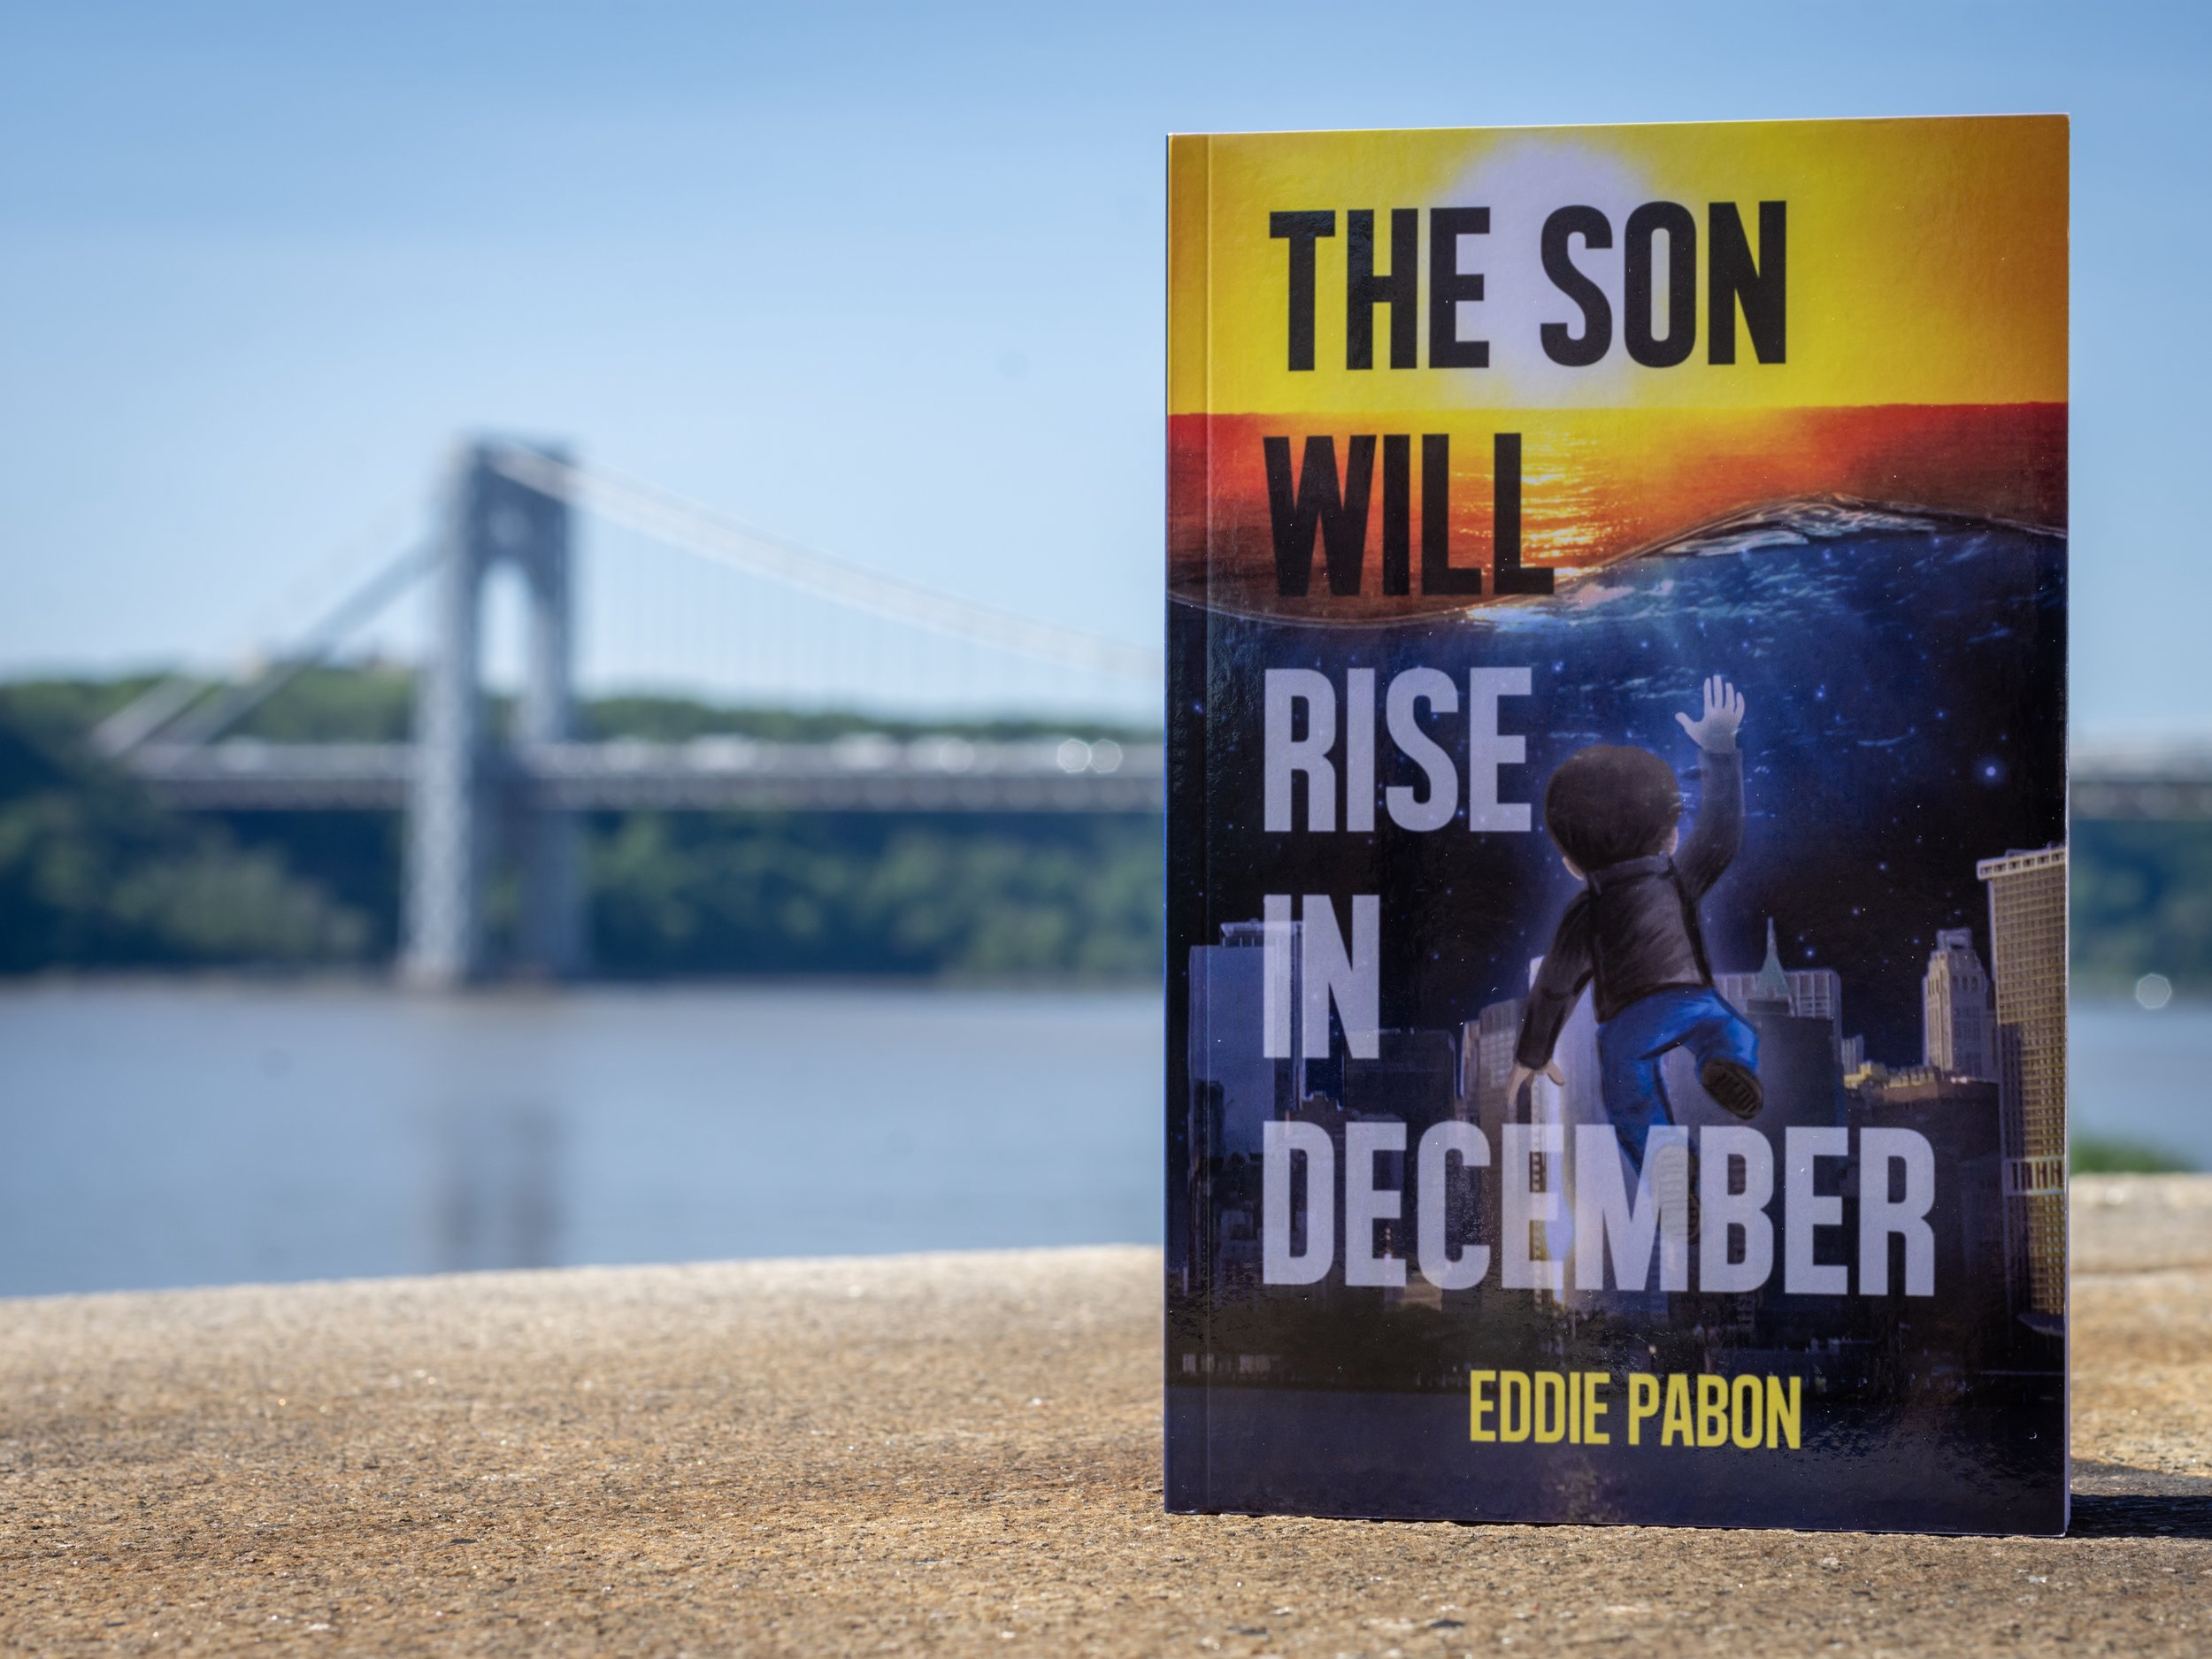 The Son Will Rise In December available now for purchase | Courtesy of Jessie Paulino - LaLecheDelArte.com